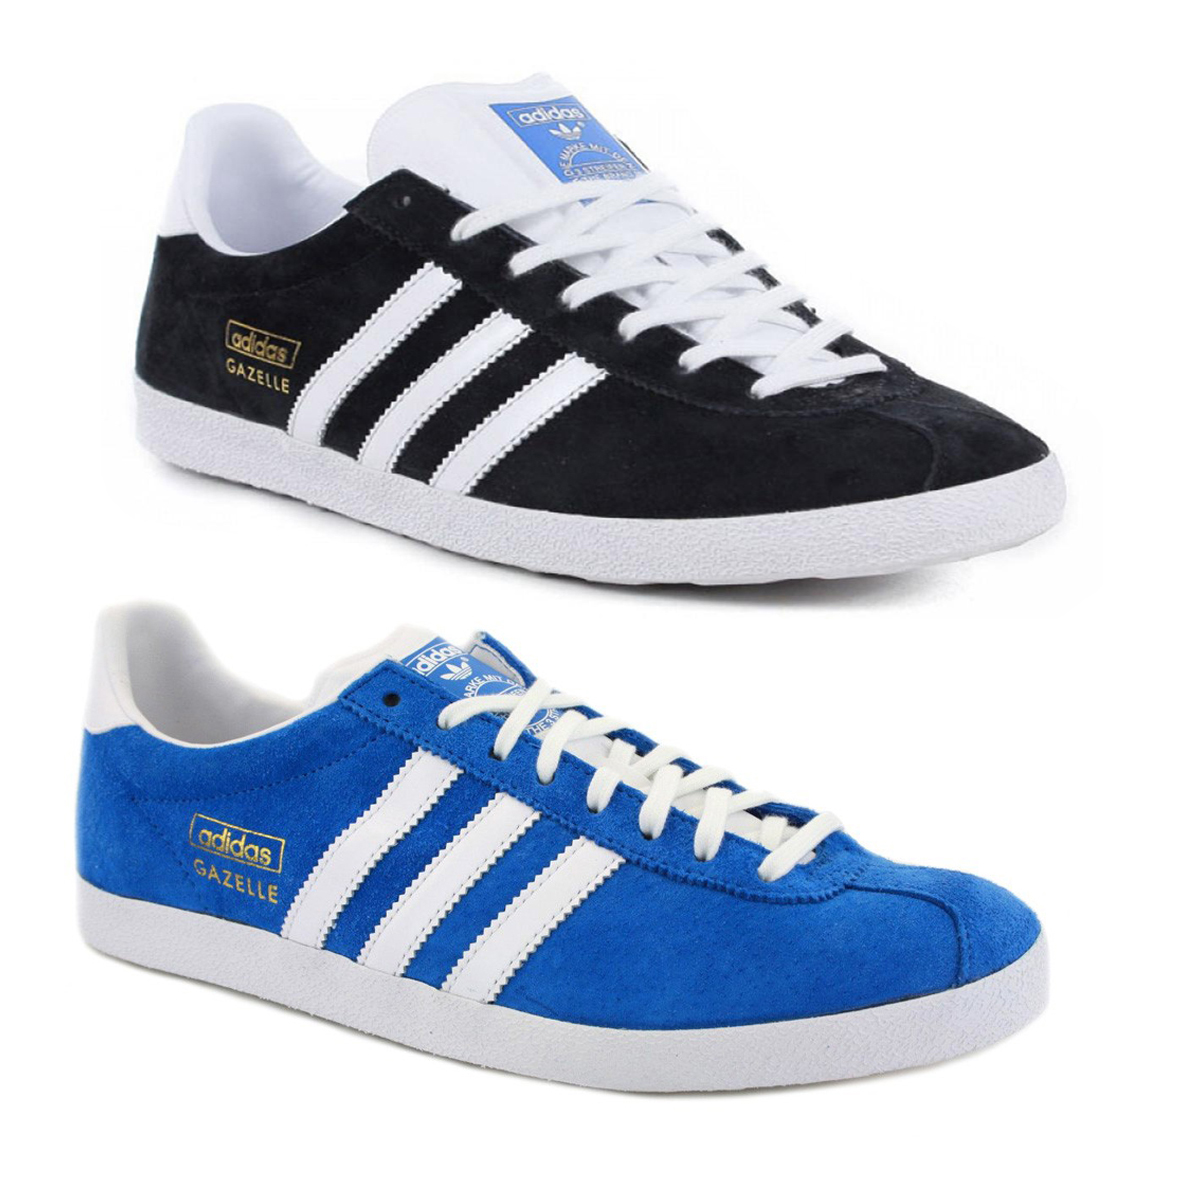 New Mens Adidas Gazelle Original Classic Suede Sports Shoes Trainers Size 7-12